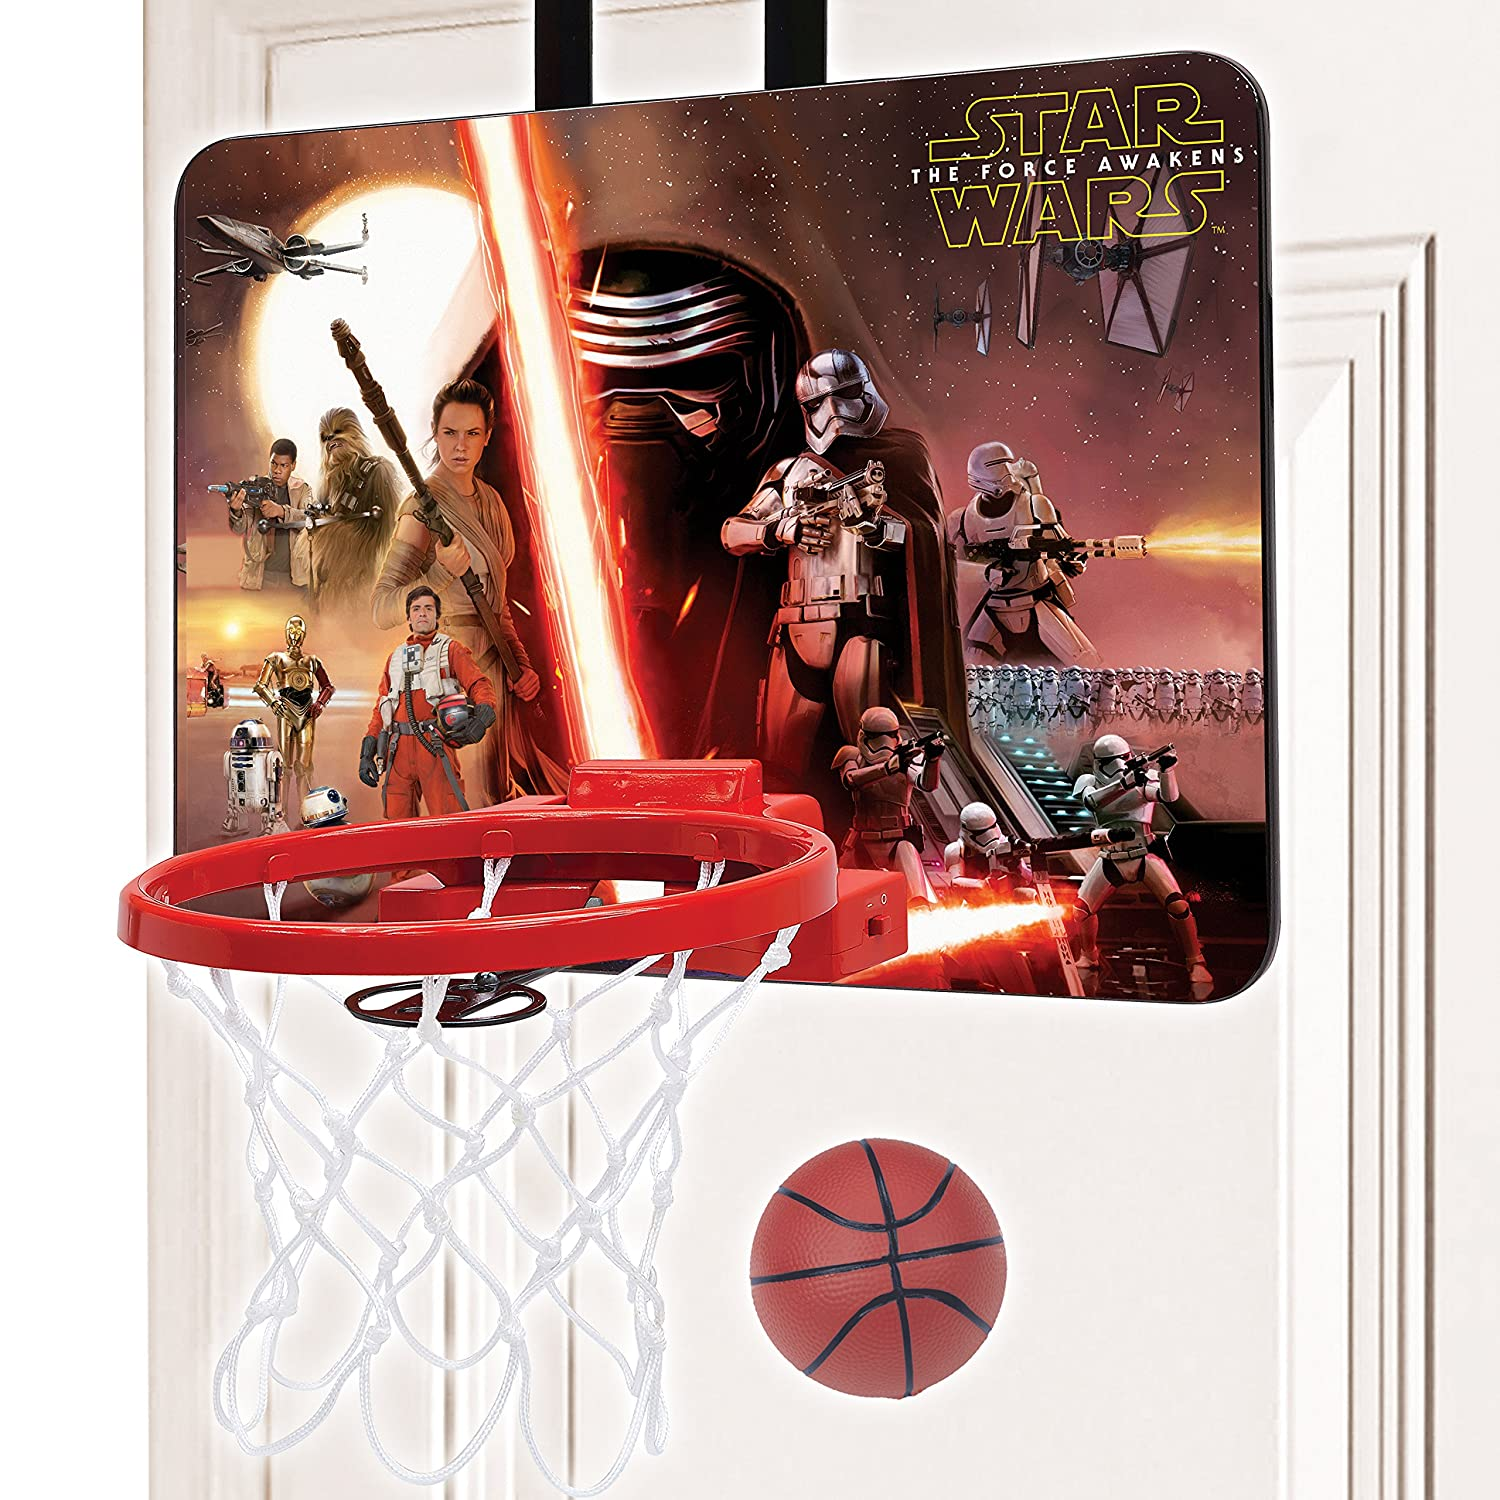 The Force Awakens Hangin' Hoops Game Moose Mountain - Domestic 8587